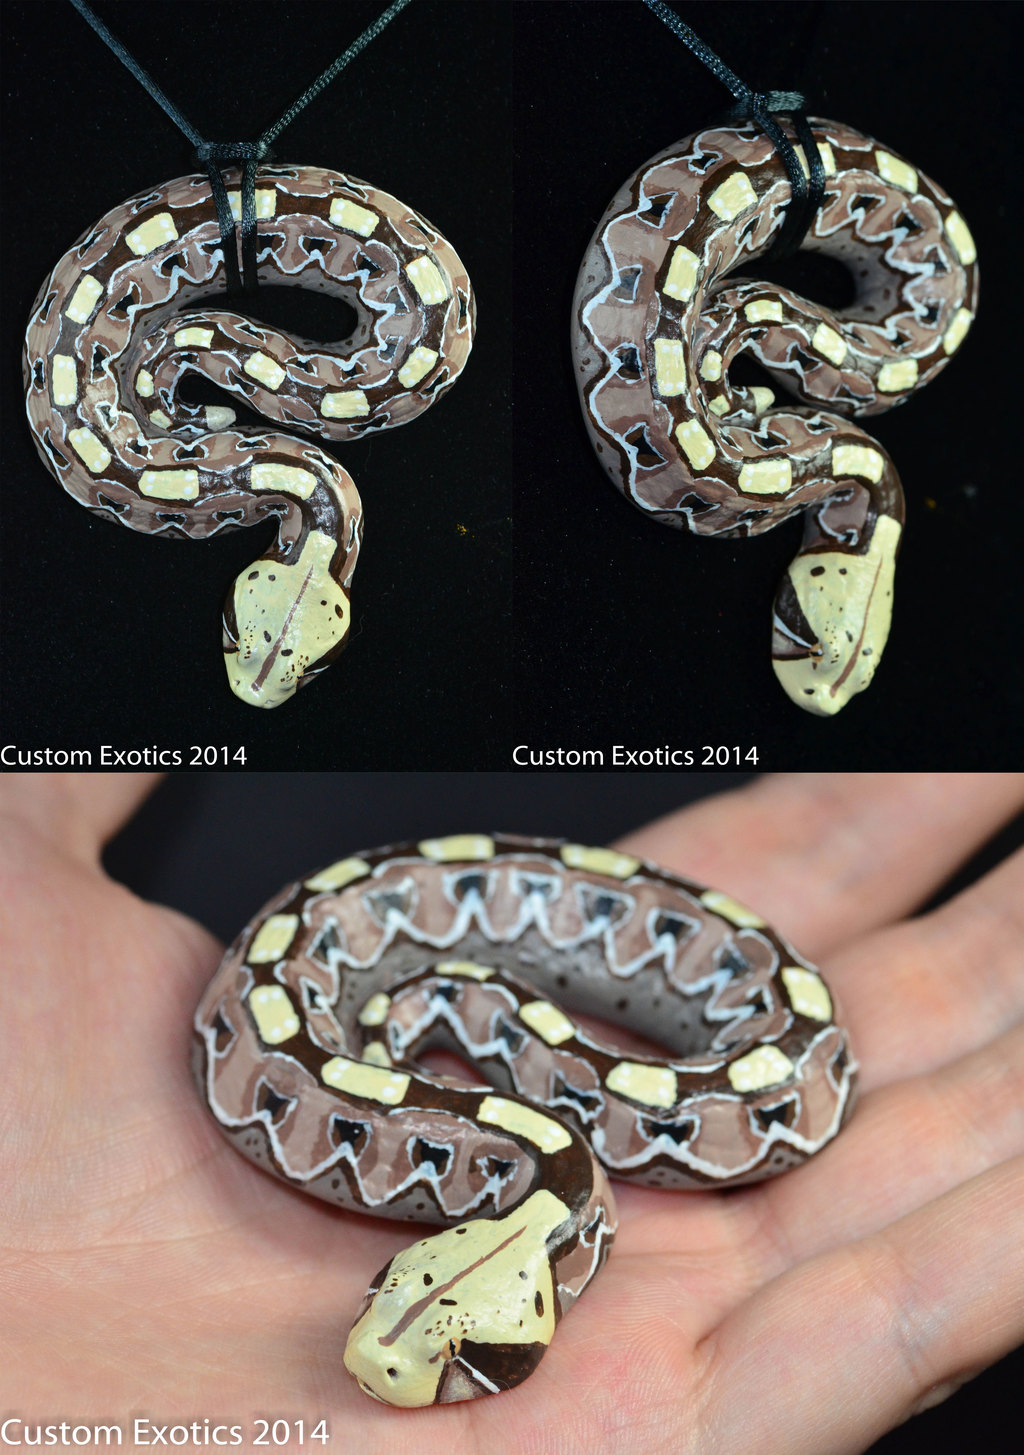 Most recent image: Polymer Clay Gaboon Viper Pendant version 2